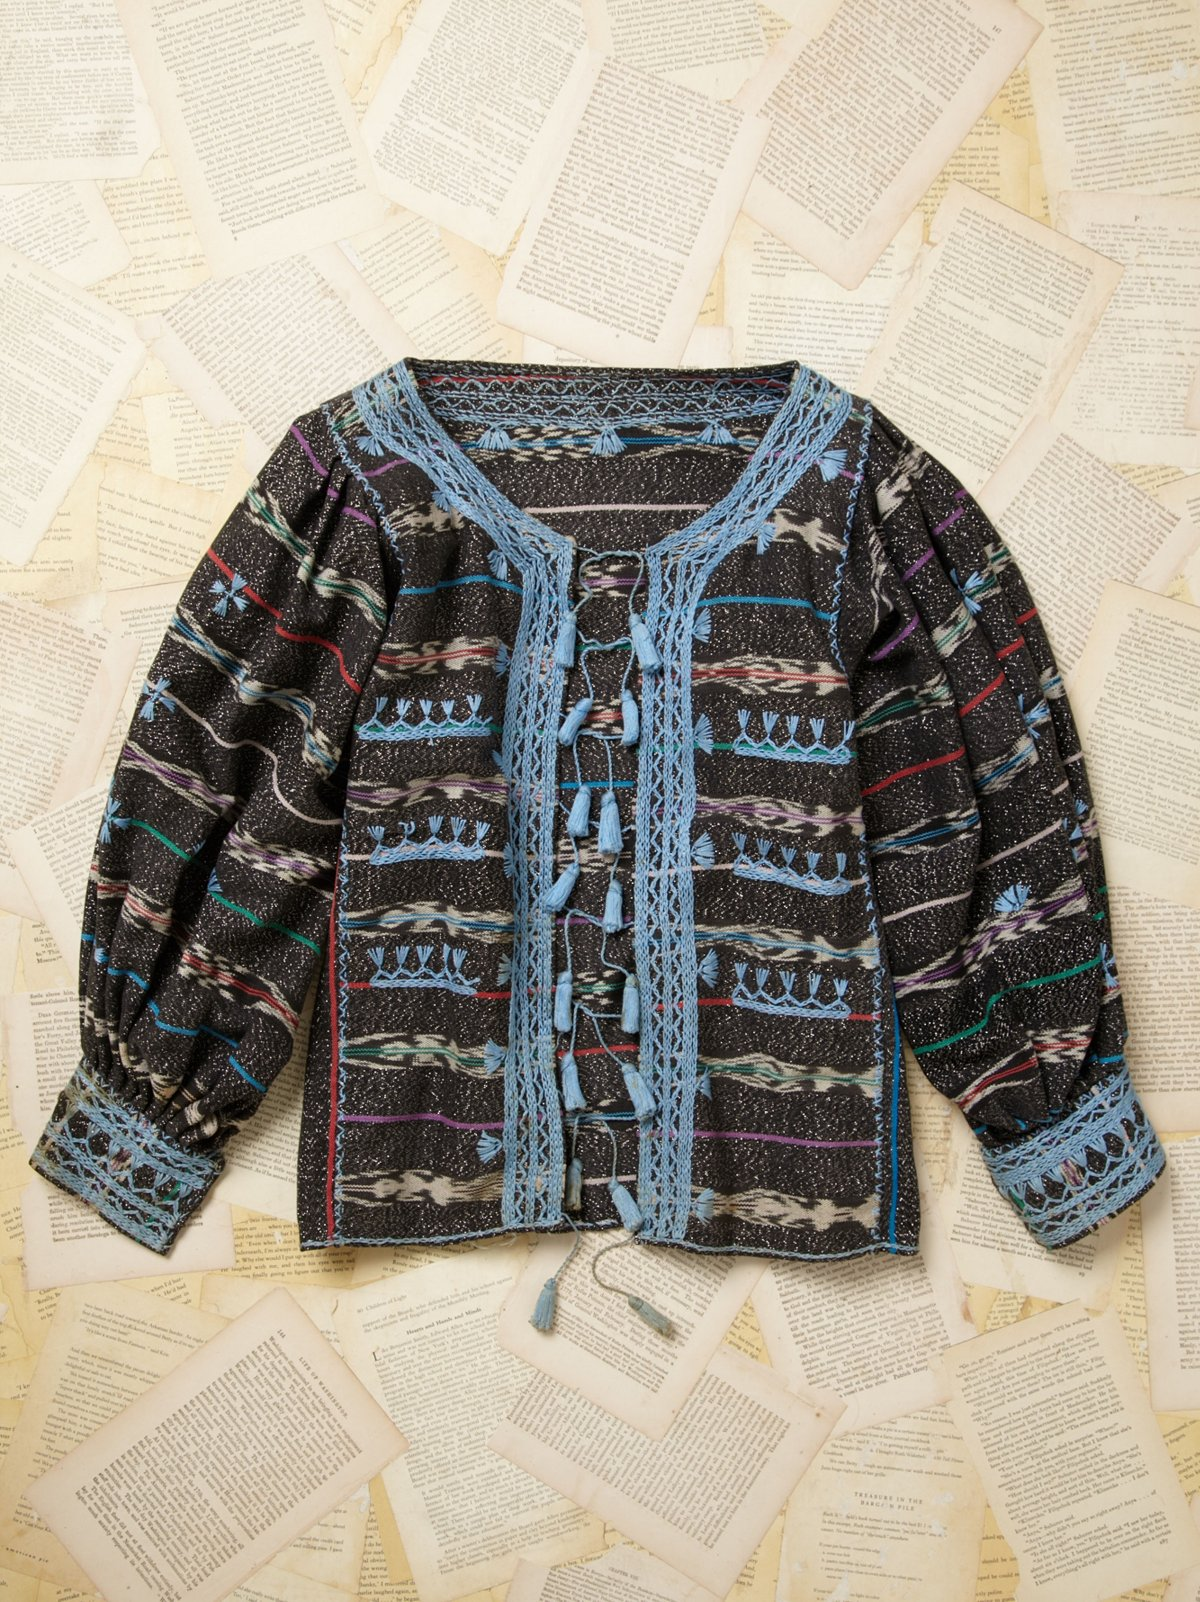 Vintage Embroidered Jacket